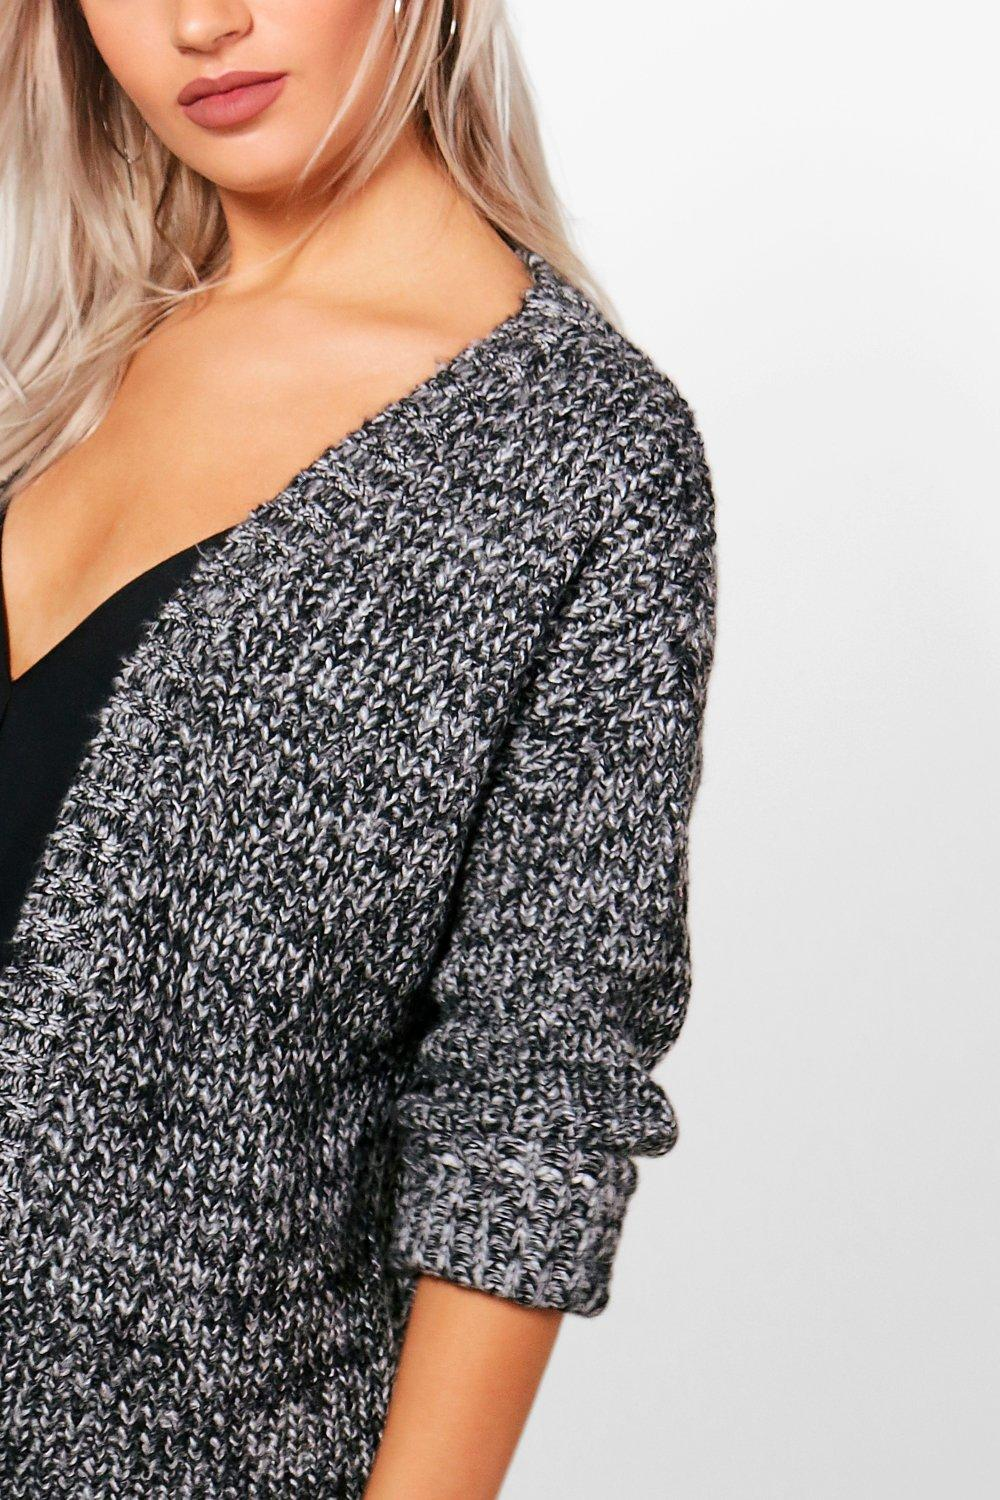 Knitting Pattern For Edge To Edge Cardigan : Isadora Edge To Edge Grungy Marl Knit Cardigan